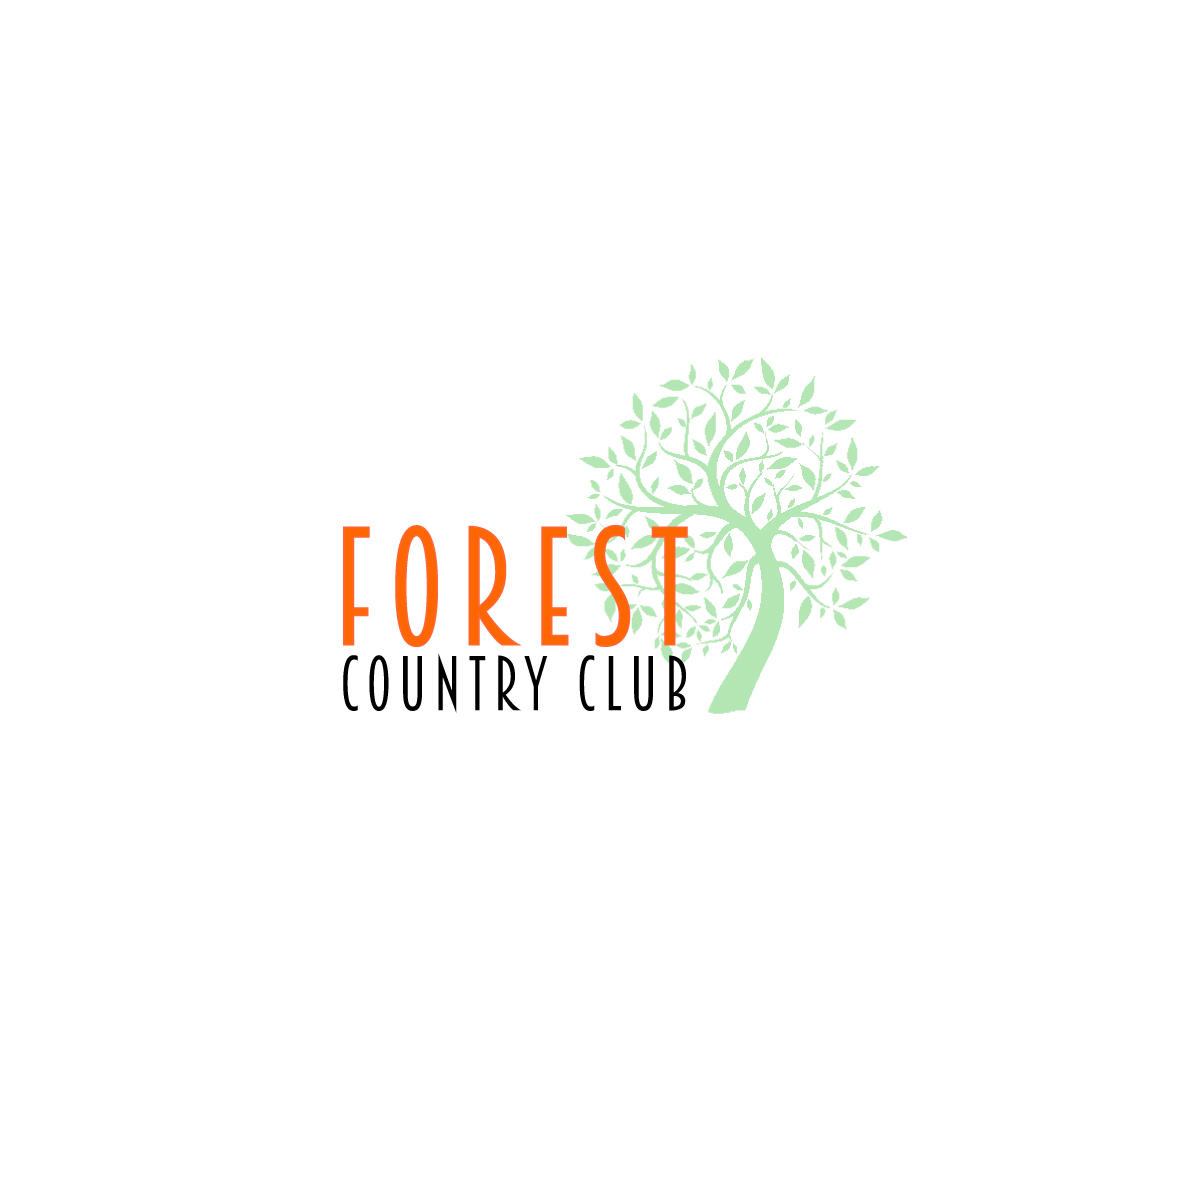 Forest Country Club - concept